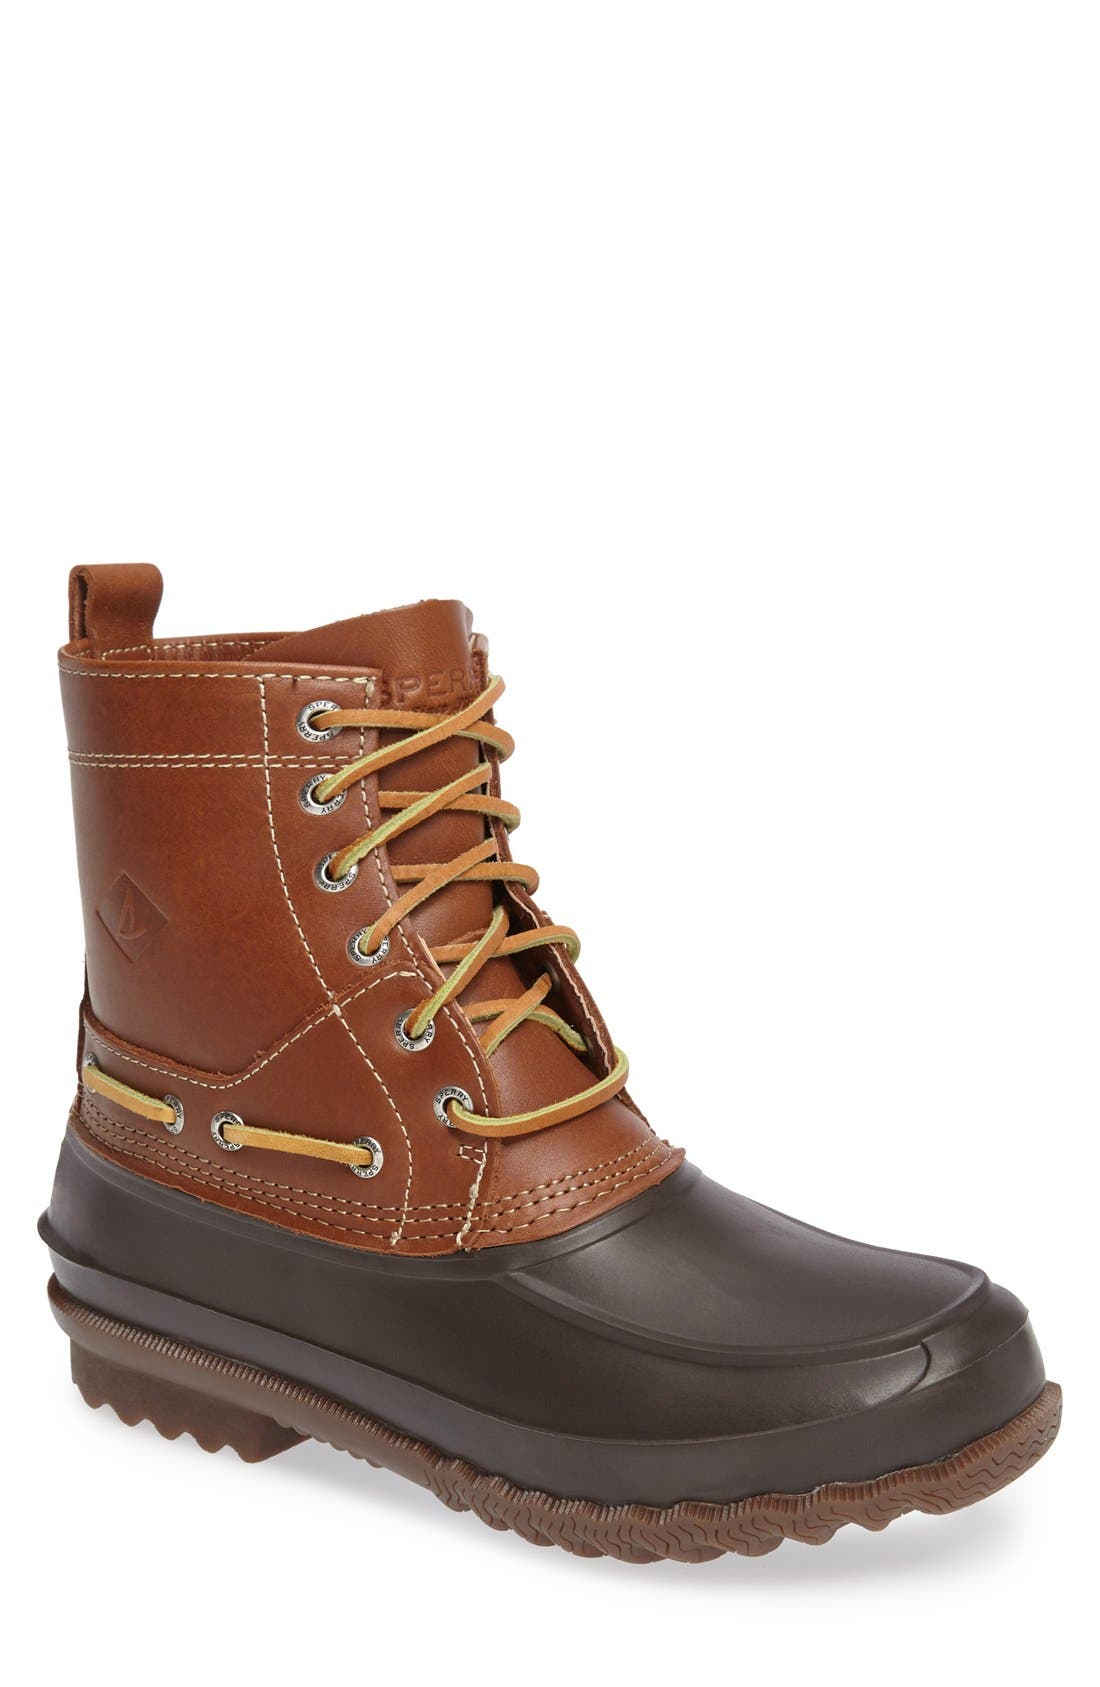 Alternate Image 1 Selected - Sperry 'Decoy' Waterproof Boot (Men)